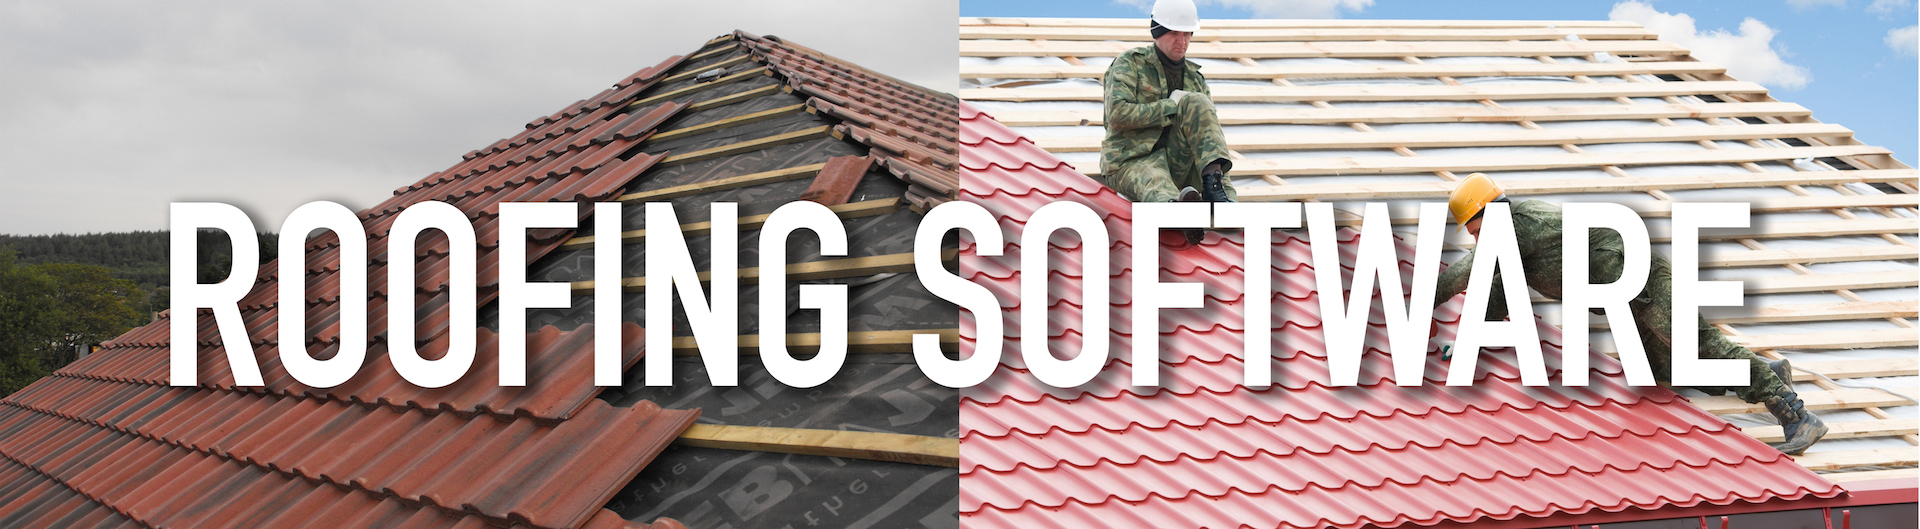 roofing-company-software